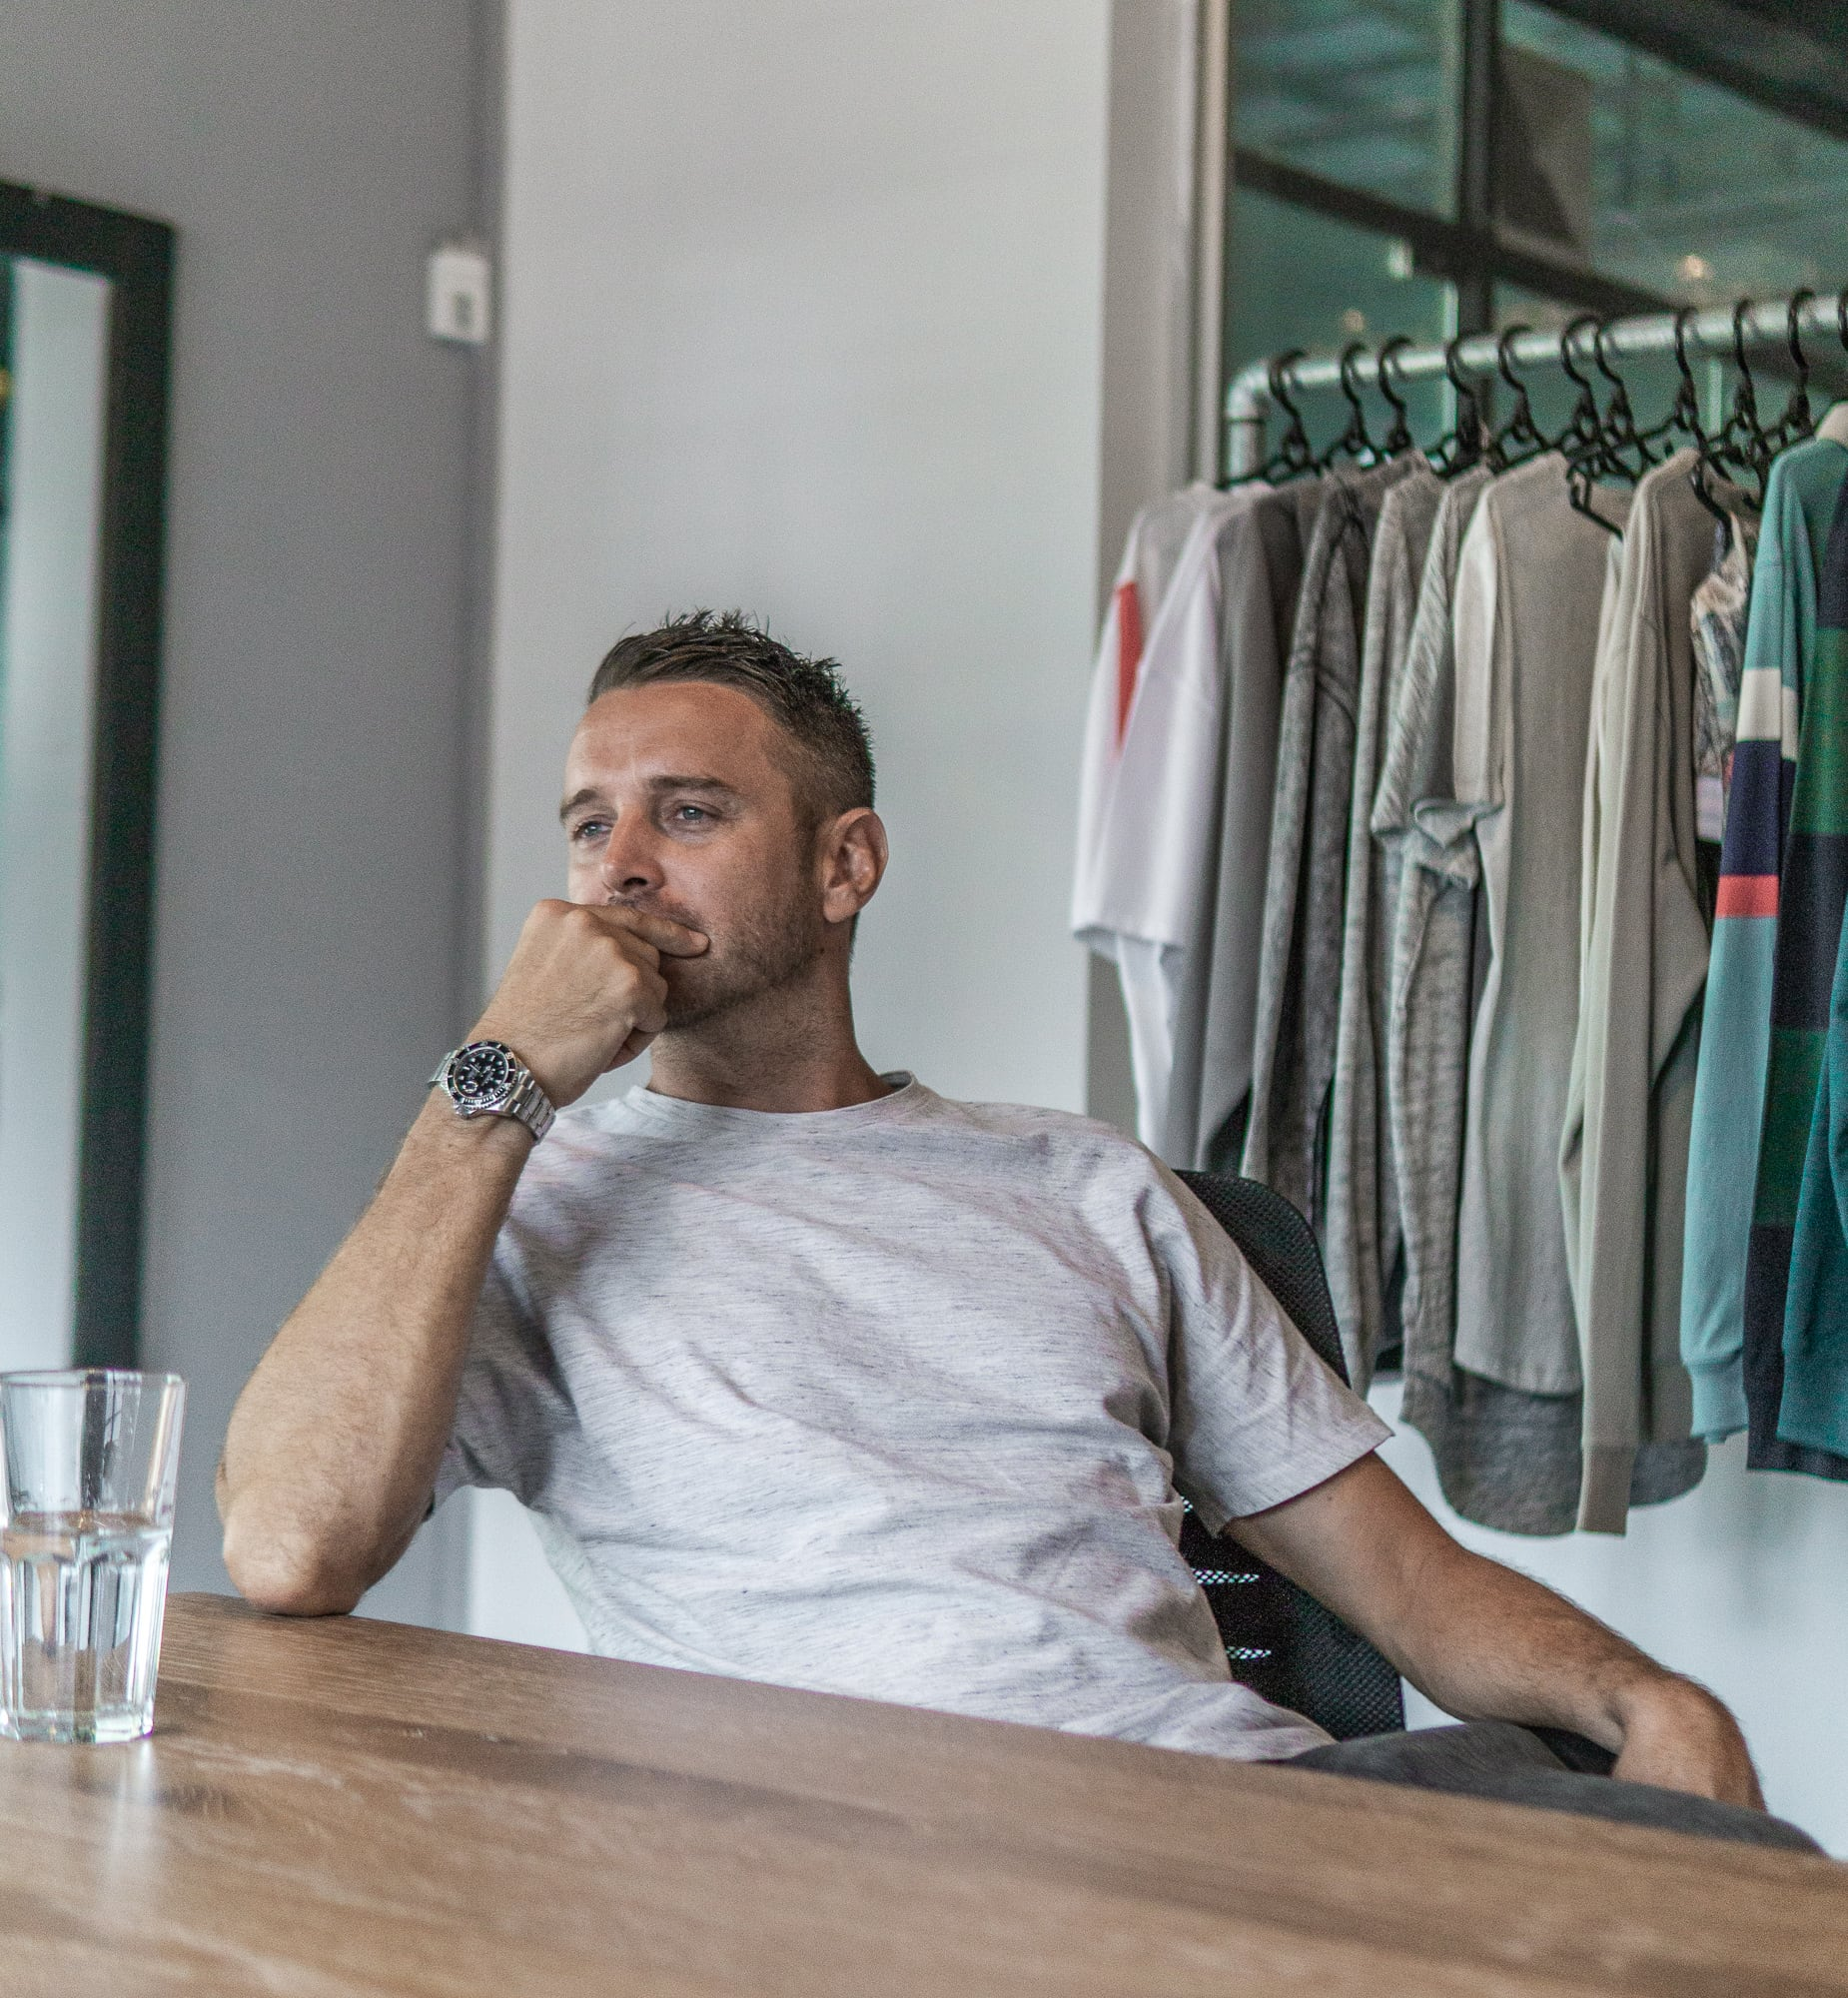 How I Manage: Un-Available's Paul Norriss On Producing Garments For Streetwear Brands-0